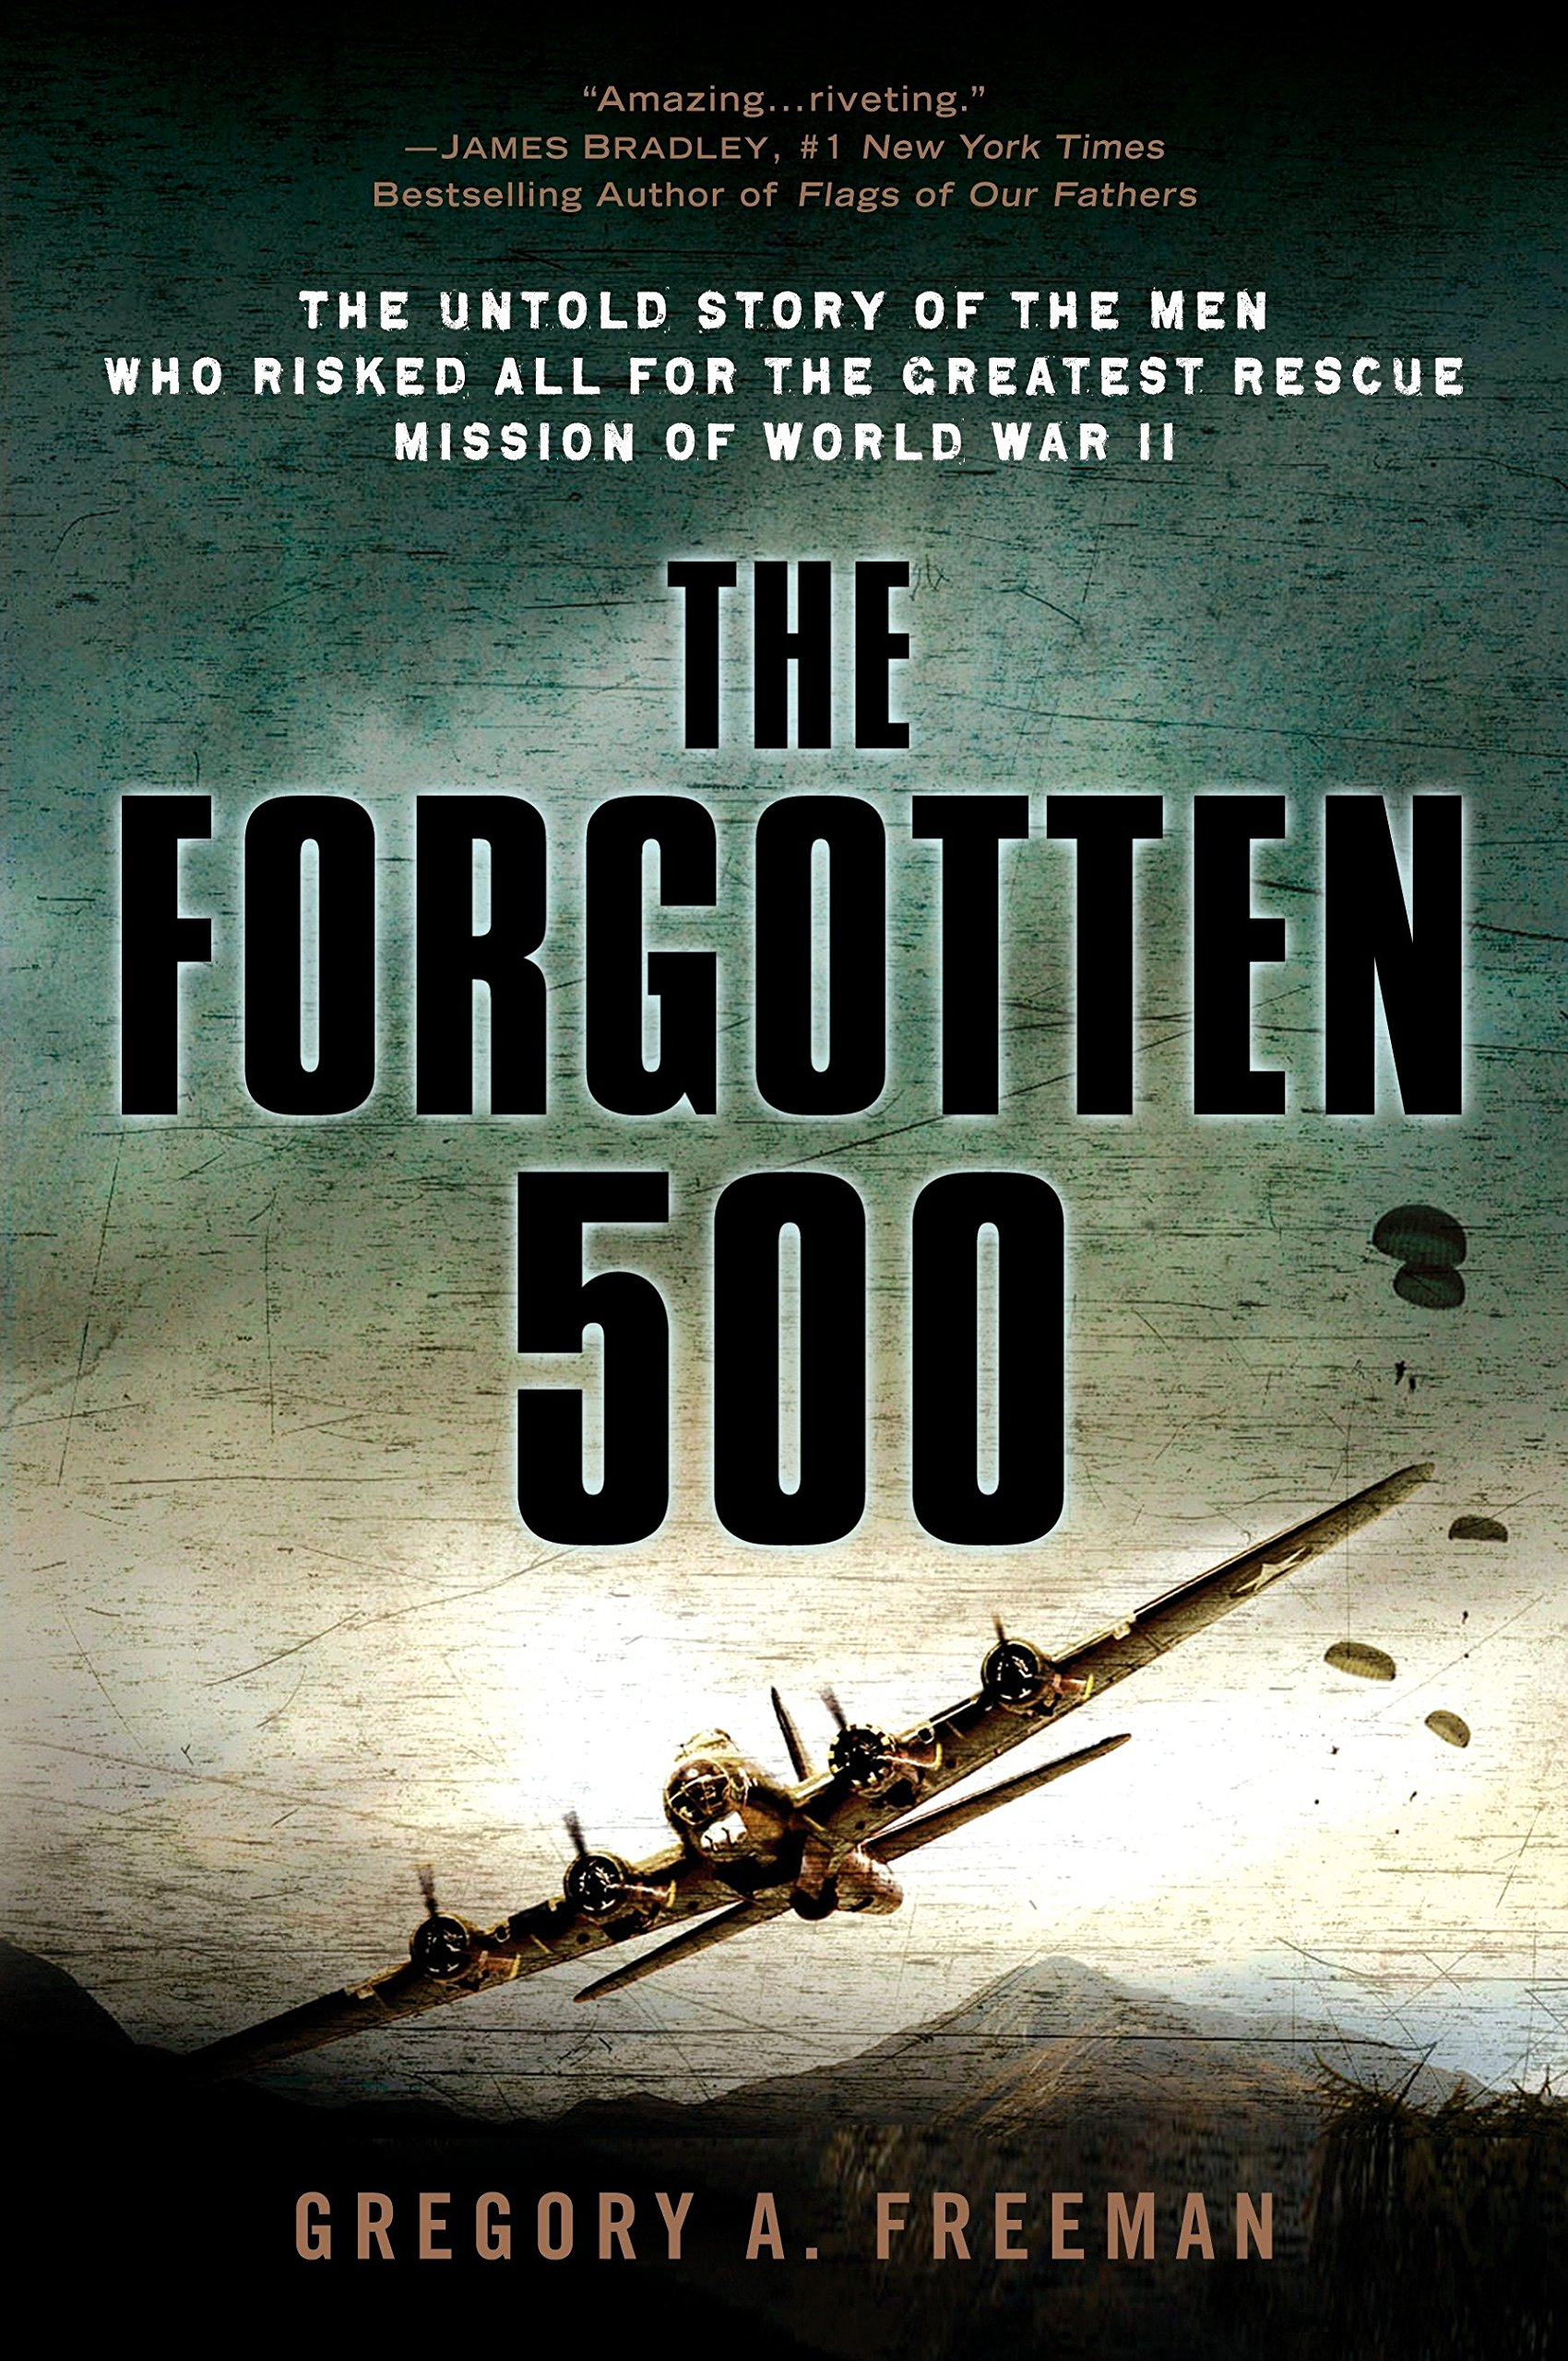 Read Online The Forgotten 500: The Untold Story of the Men Who Risked All for the Greatest Rescue Mission of World War II pdf